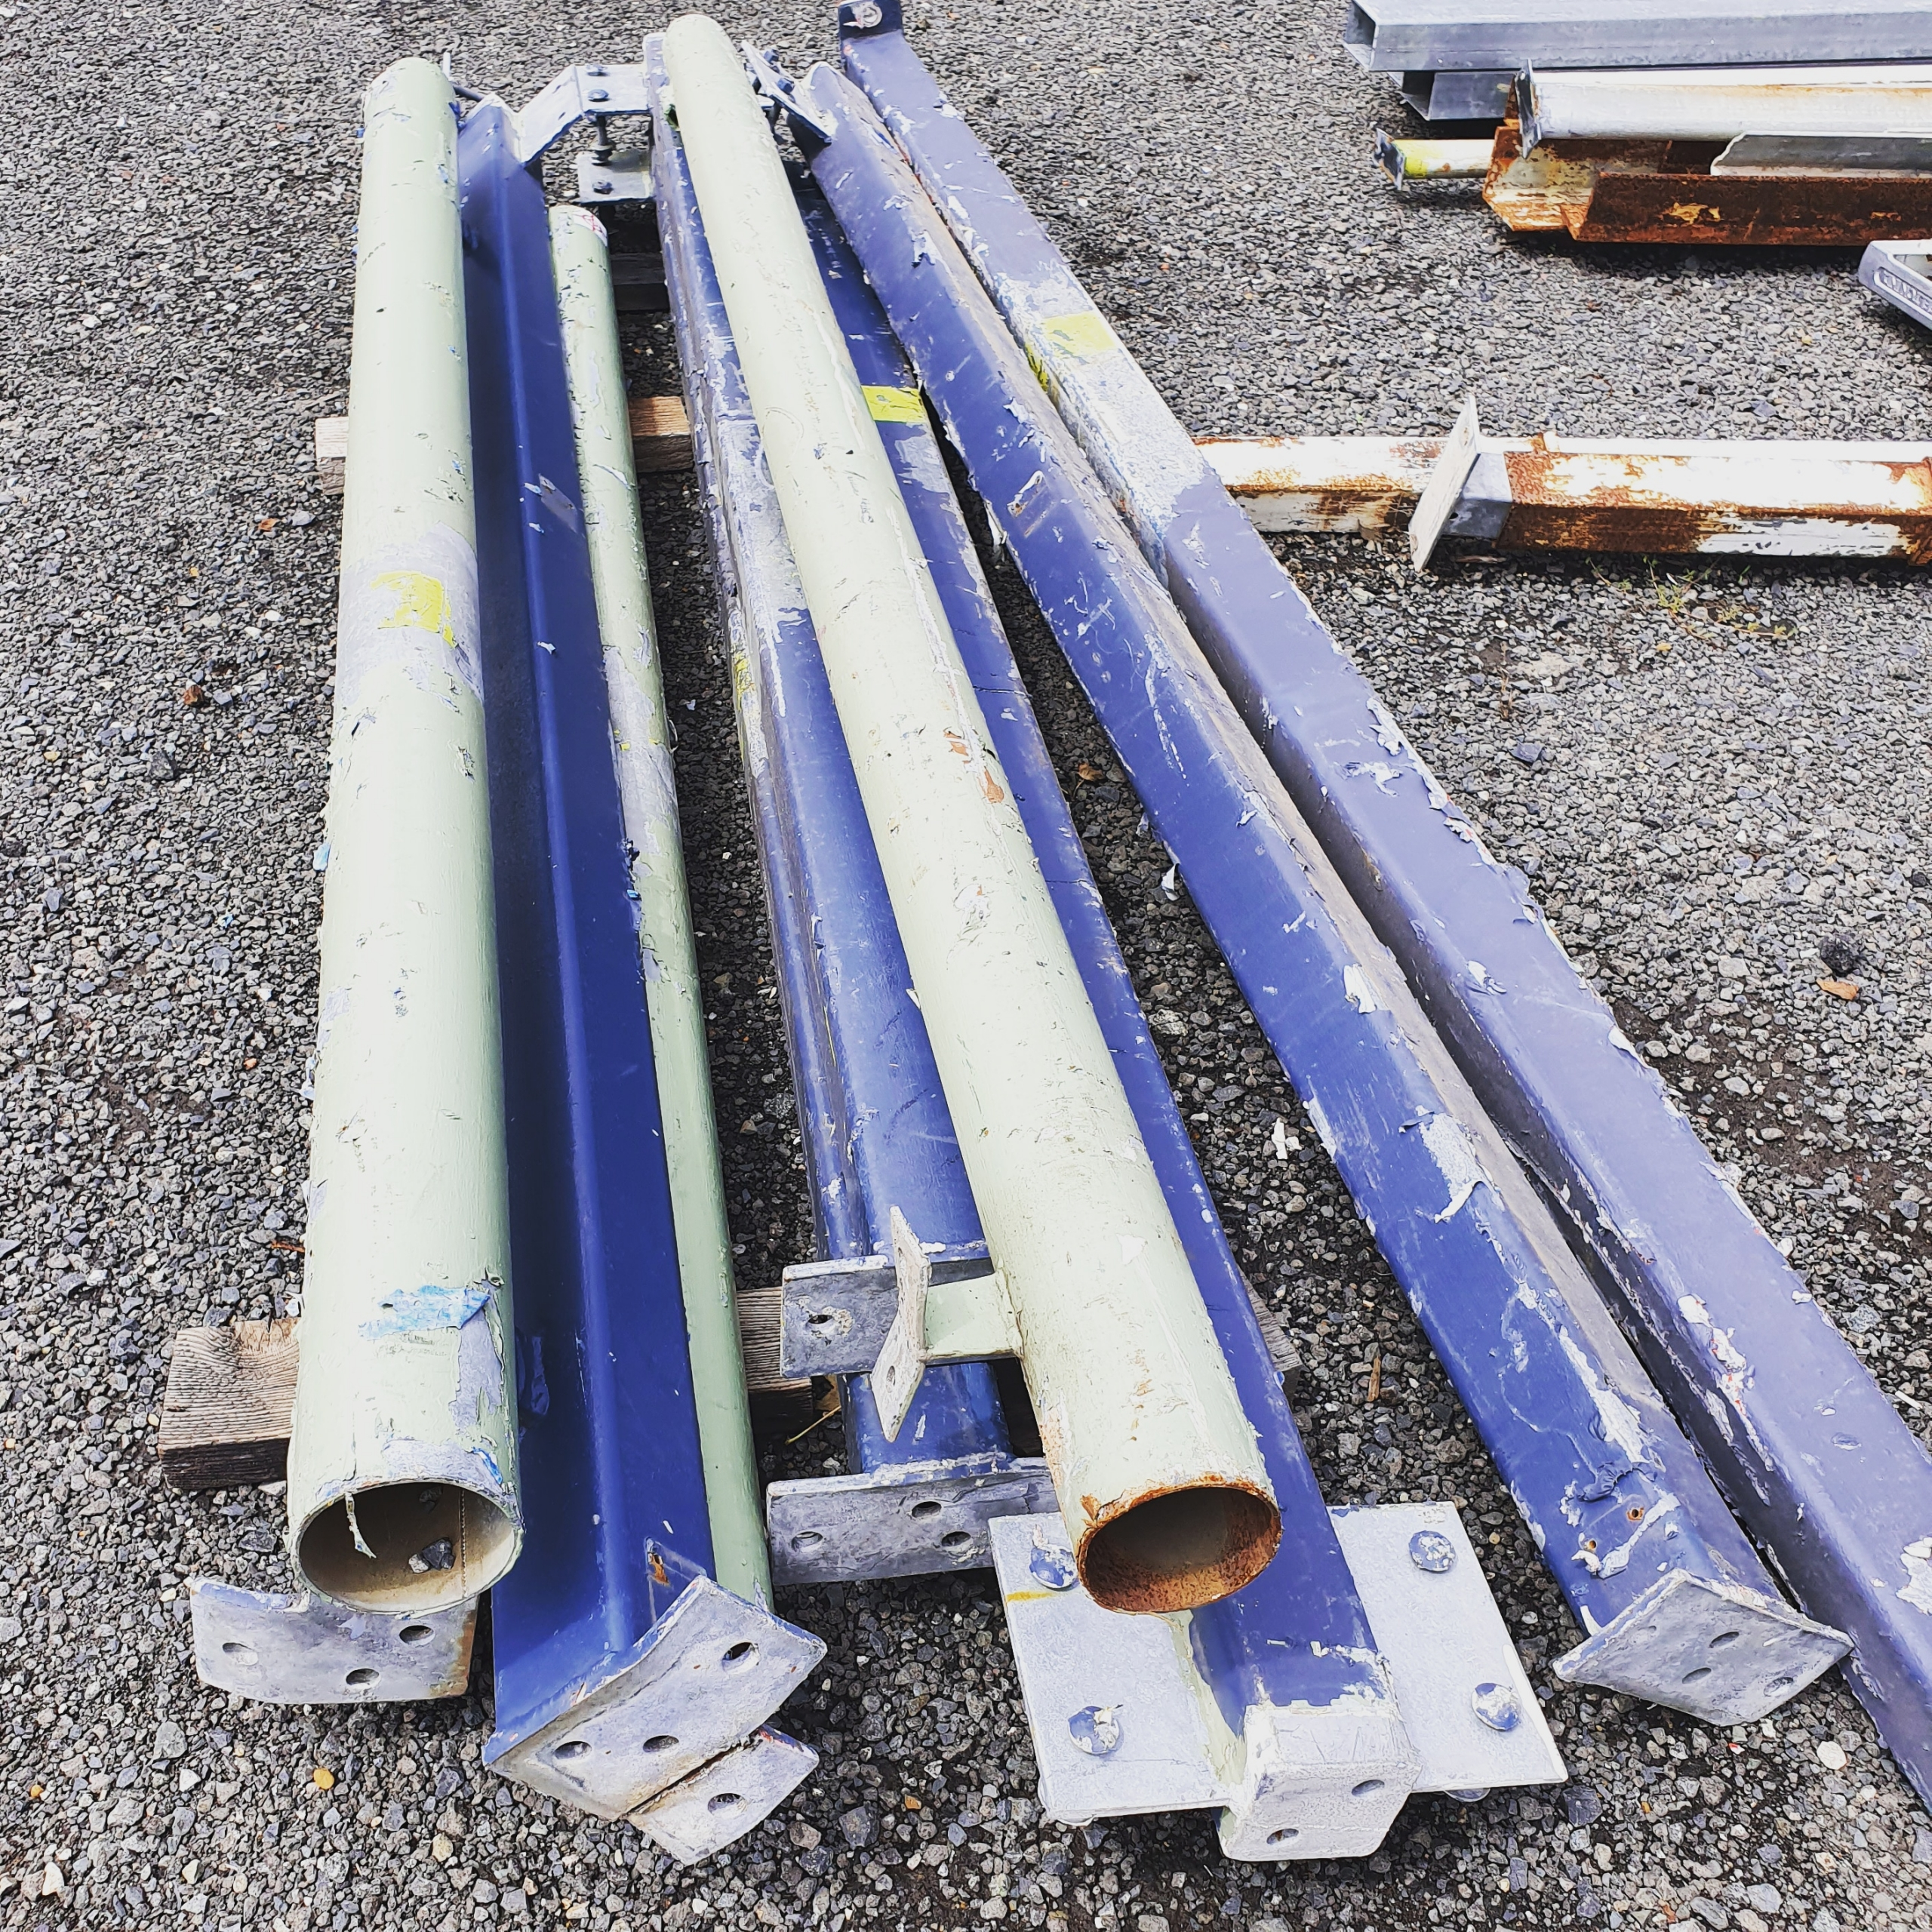 90x90mm Solid Steel Posts 4@2.3 1@2780 2.0mtr 100mm Round Posts attached to 2x2.3 Posts All have feet and/or flanges